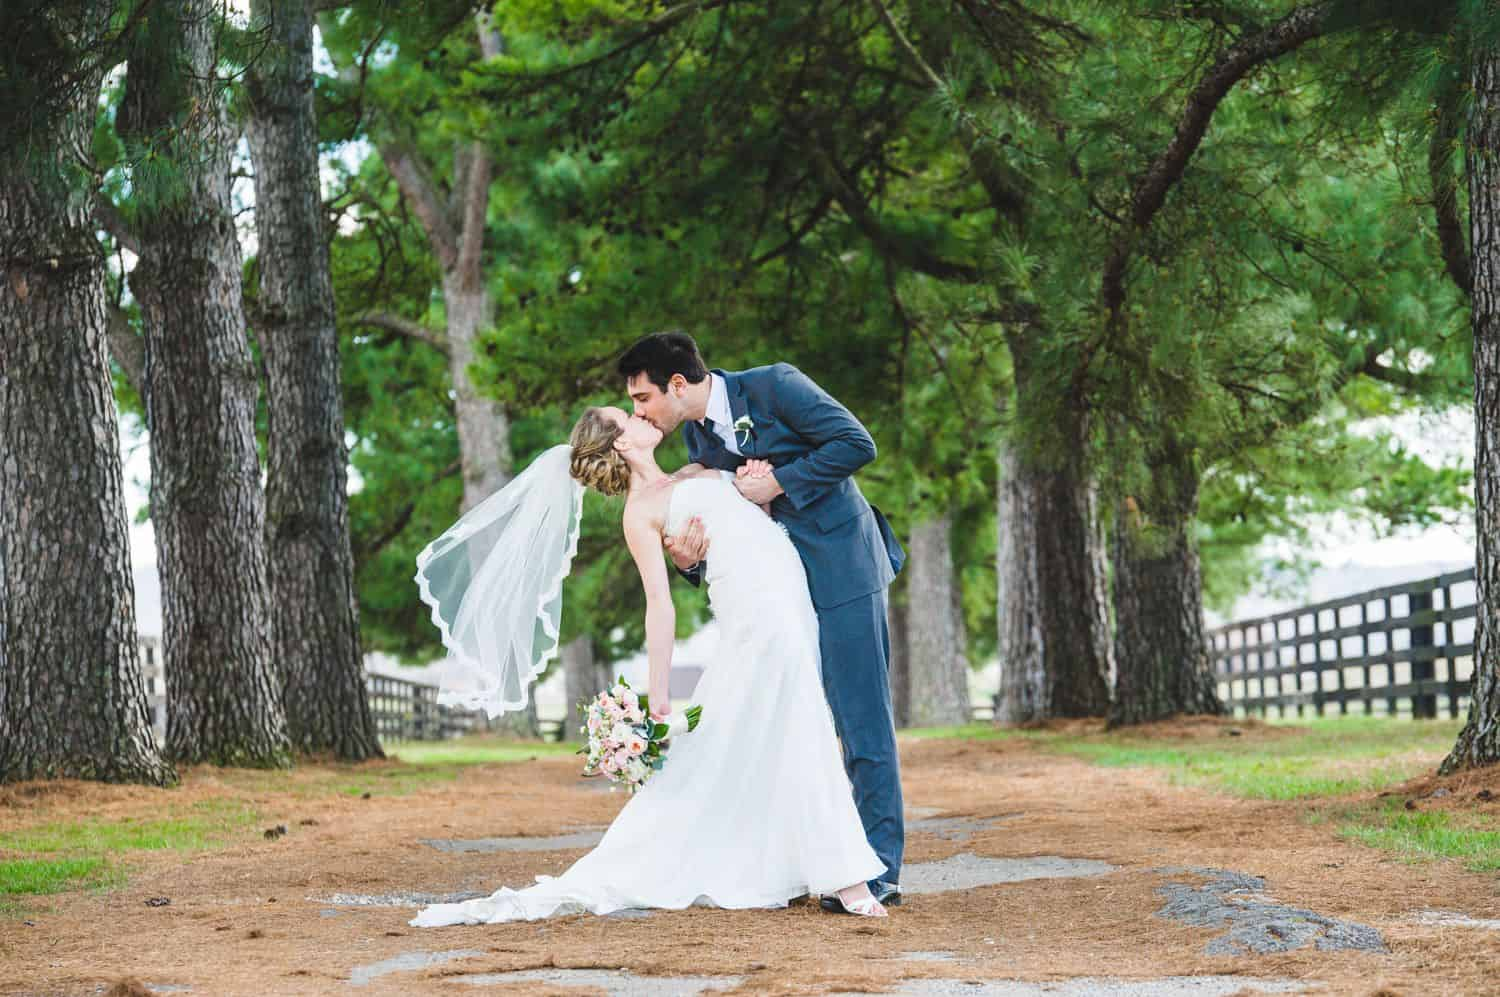 A groom dips the bride for a kiss in the shaded driveway of a mansion